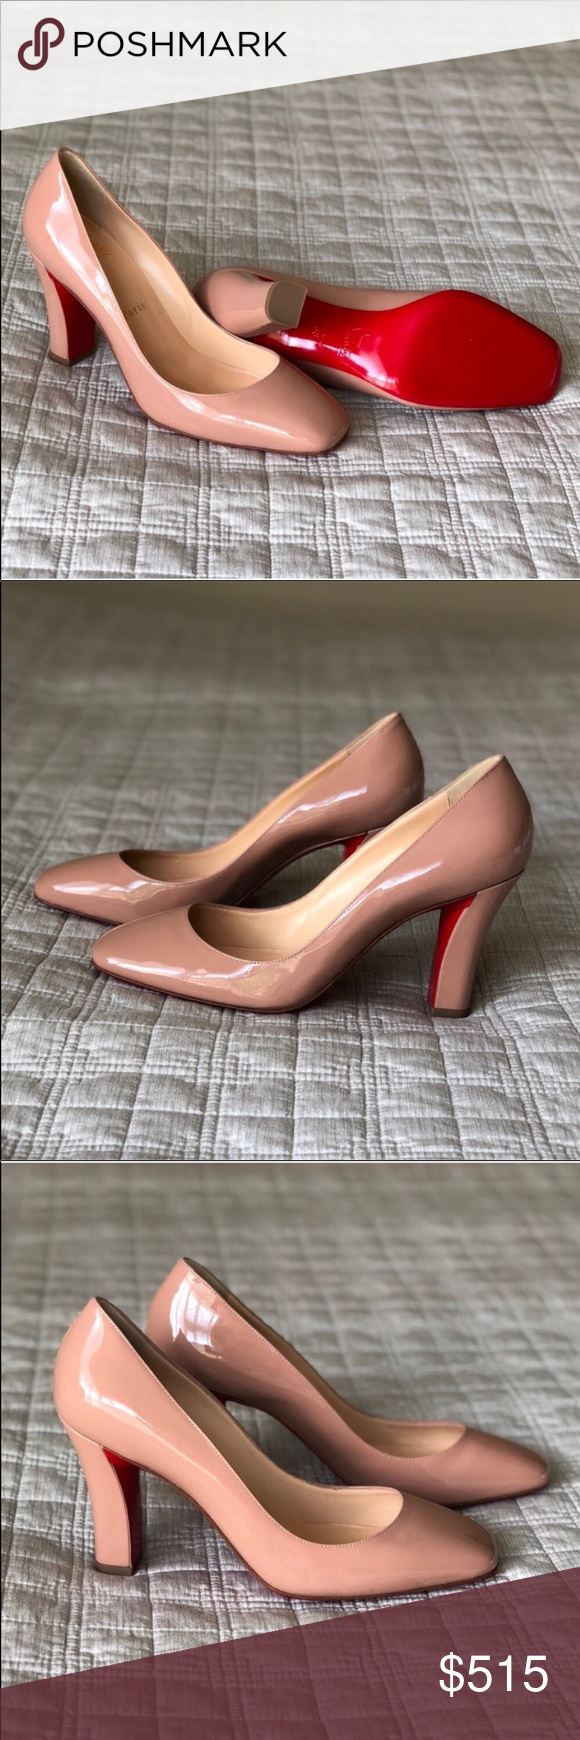 0a6aa2a989d 100% Authentic Louboutin Cadrilla Pump Patent Nude ♢ AUTHENTIC Christian  Louboutin Cadrilla Pumps ♢